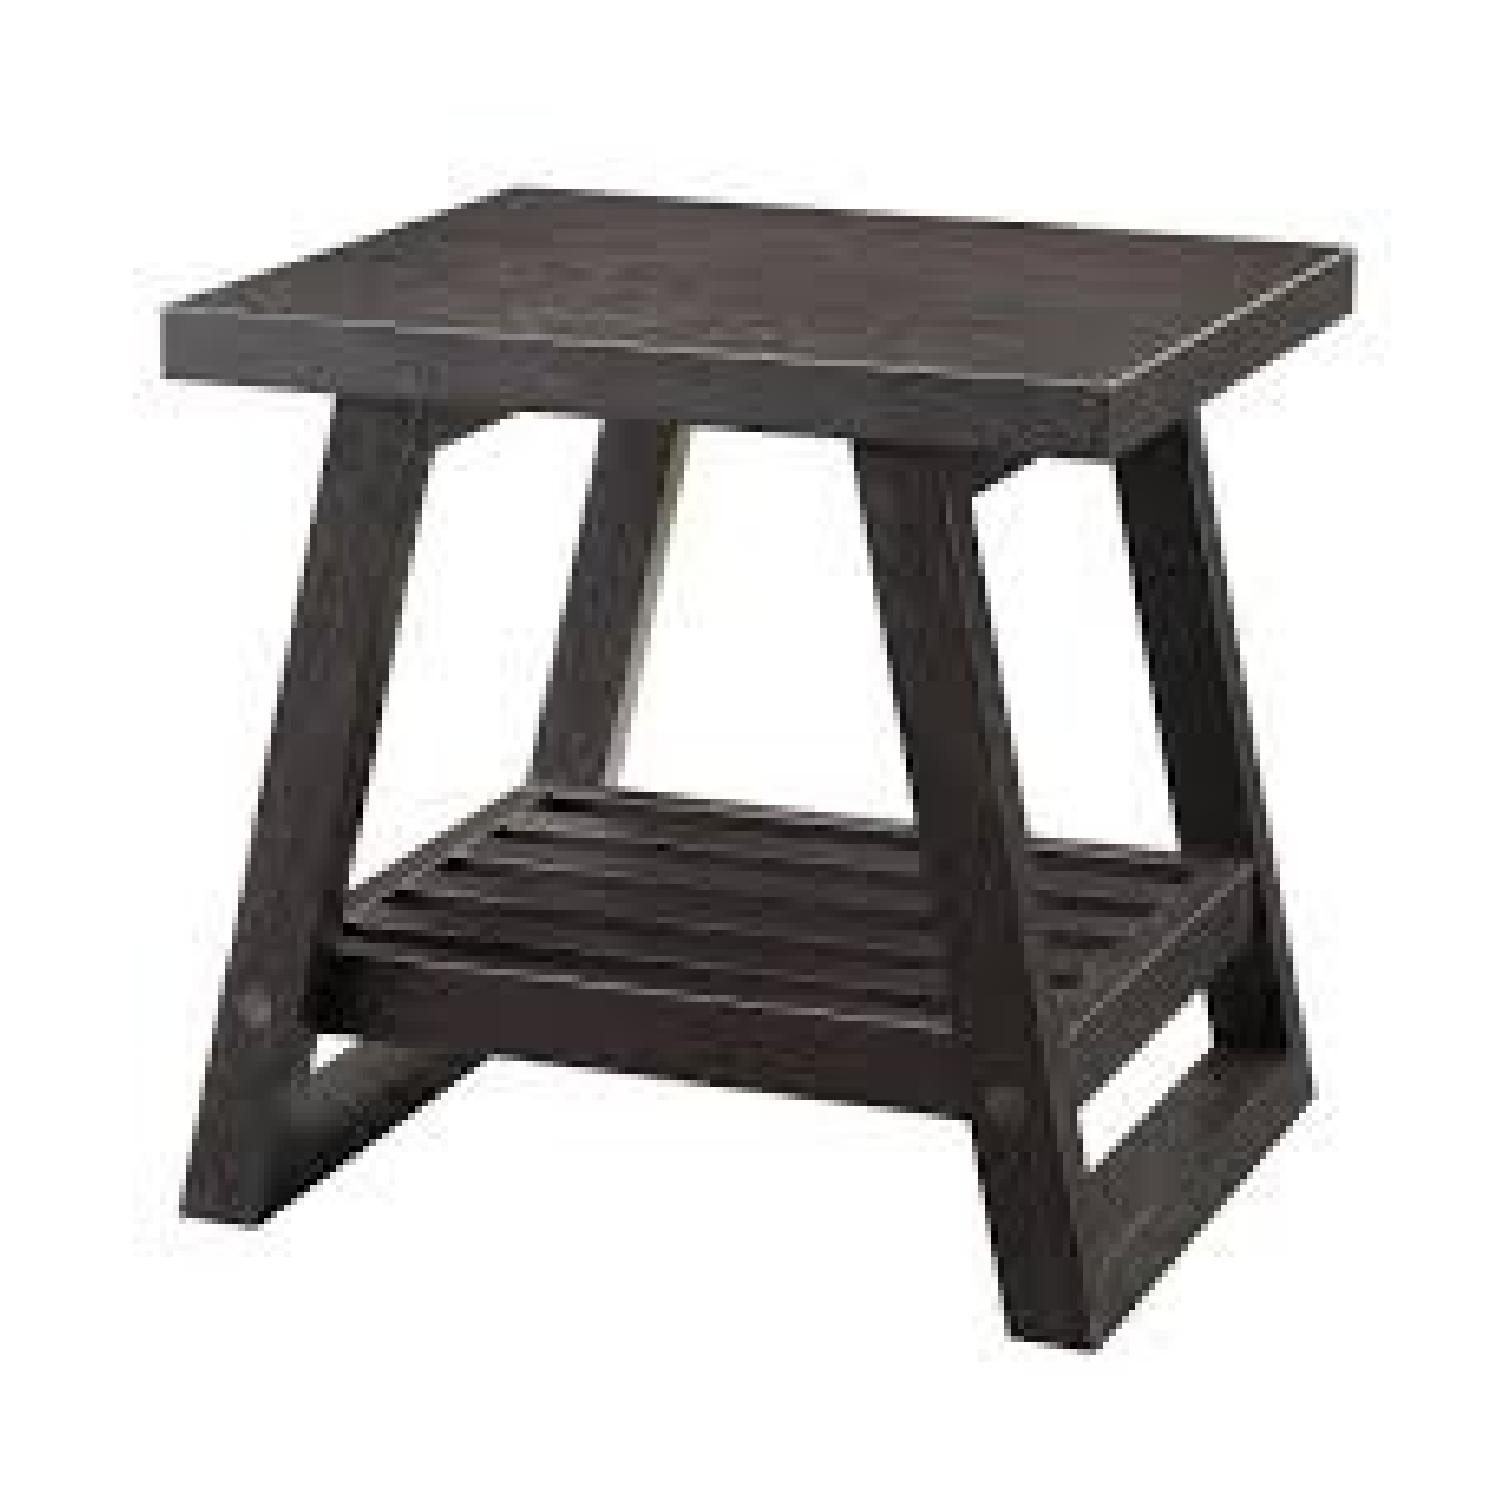 Cappuccino End Table with Slatted Bottom Shelf-1